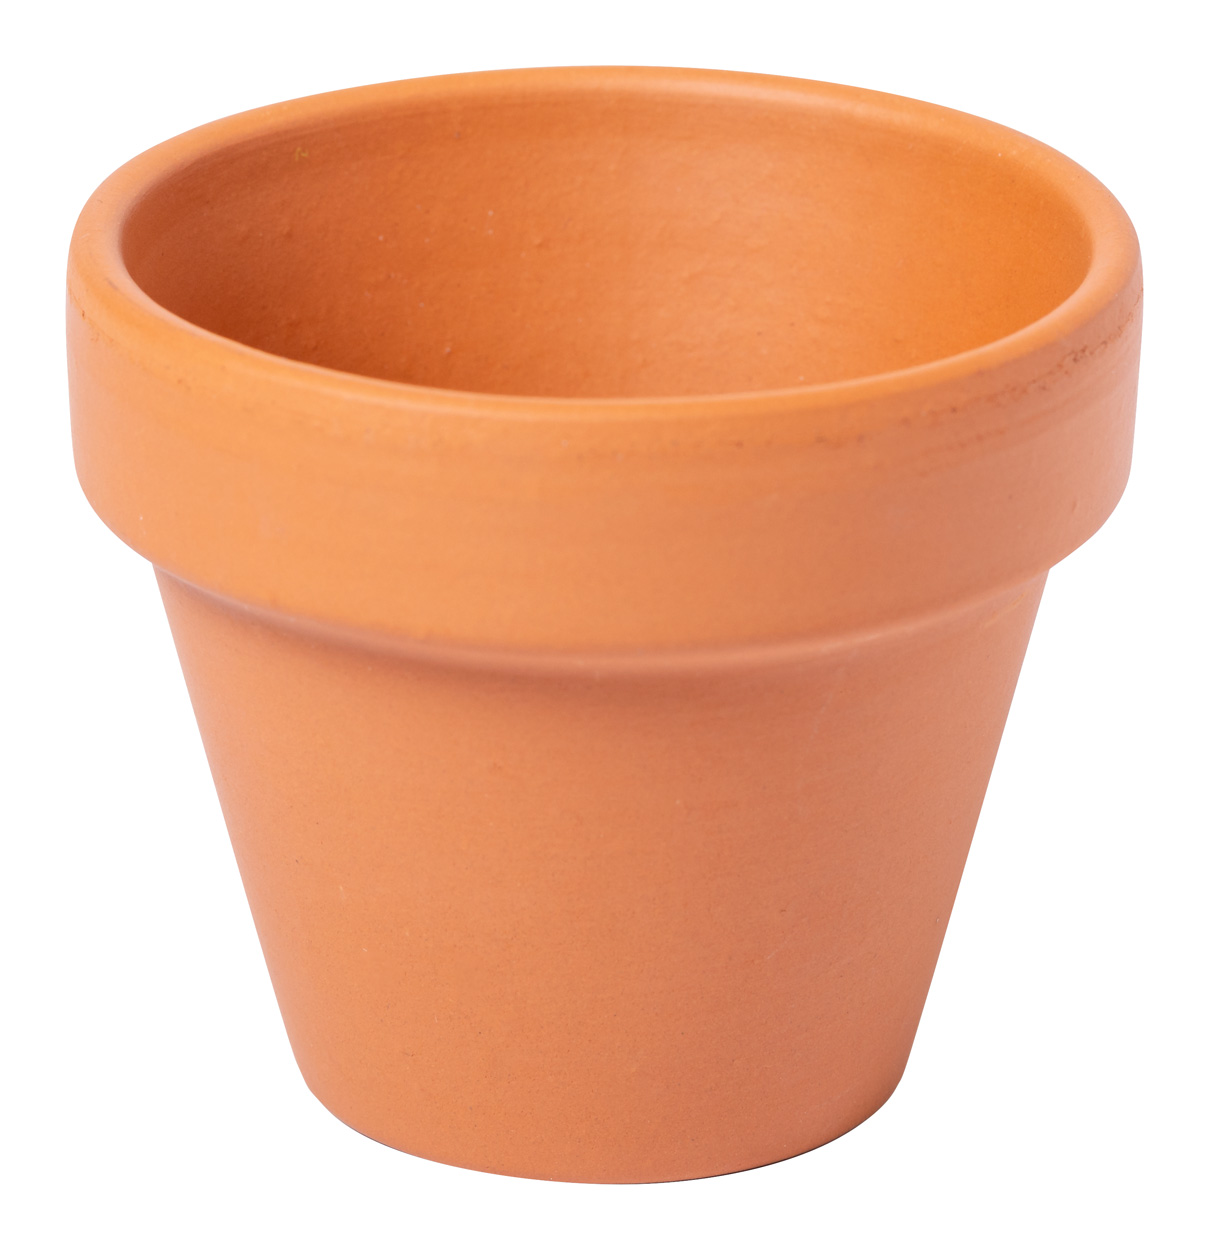 Soltax flower pot